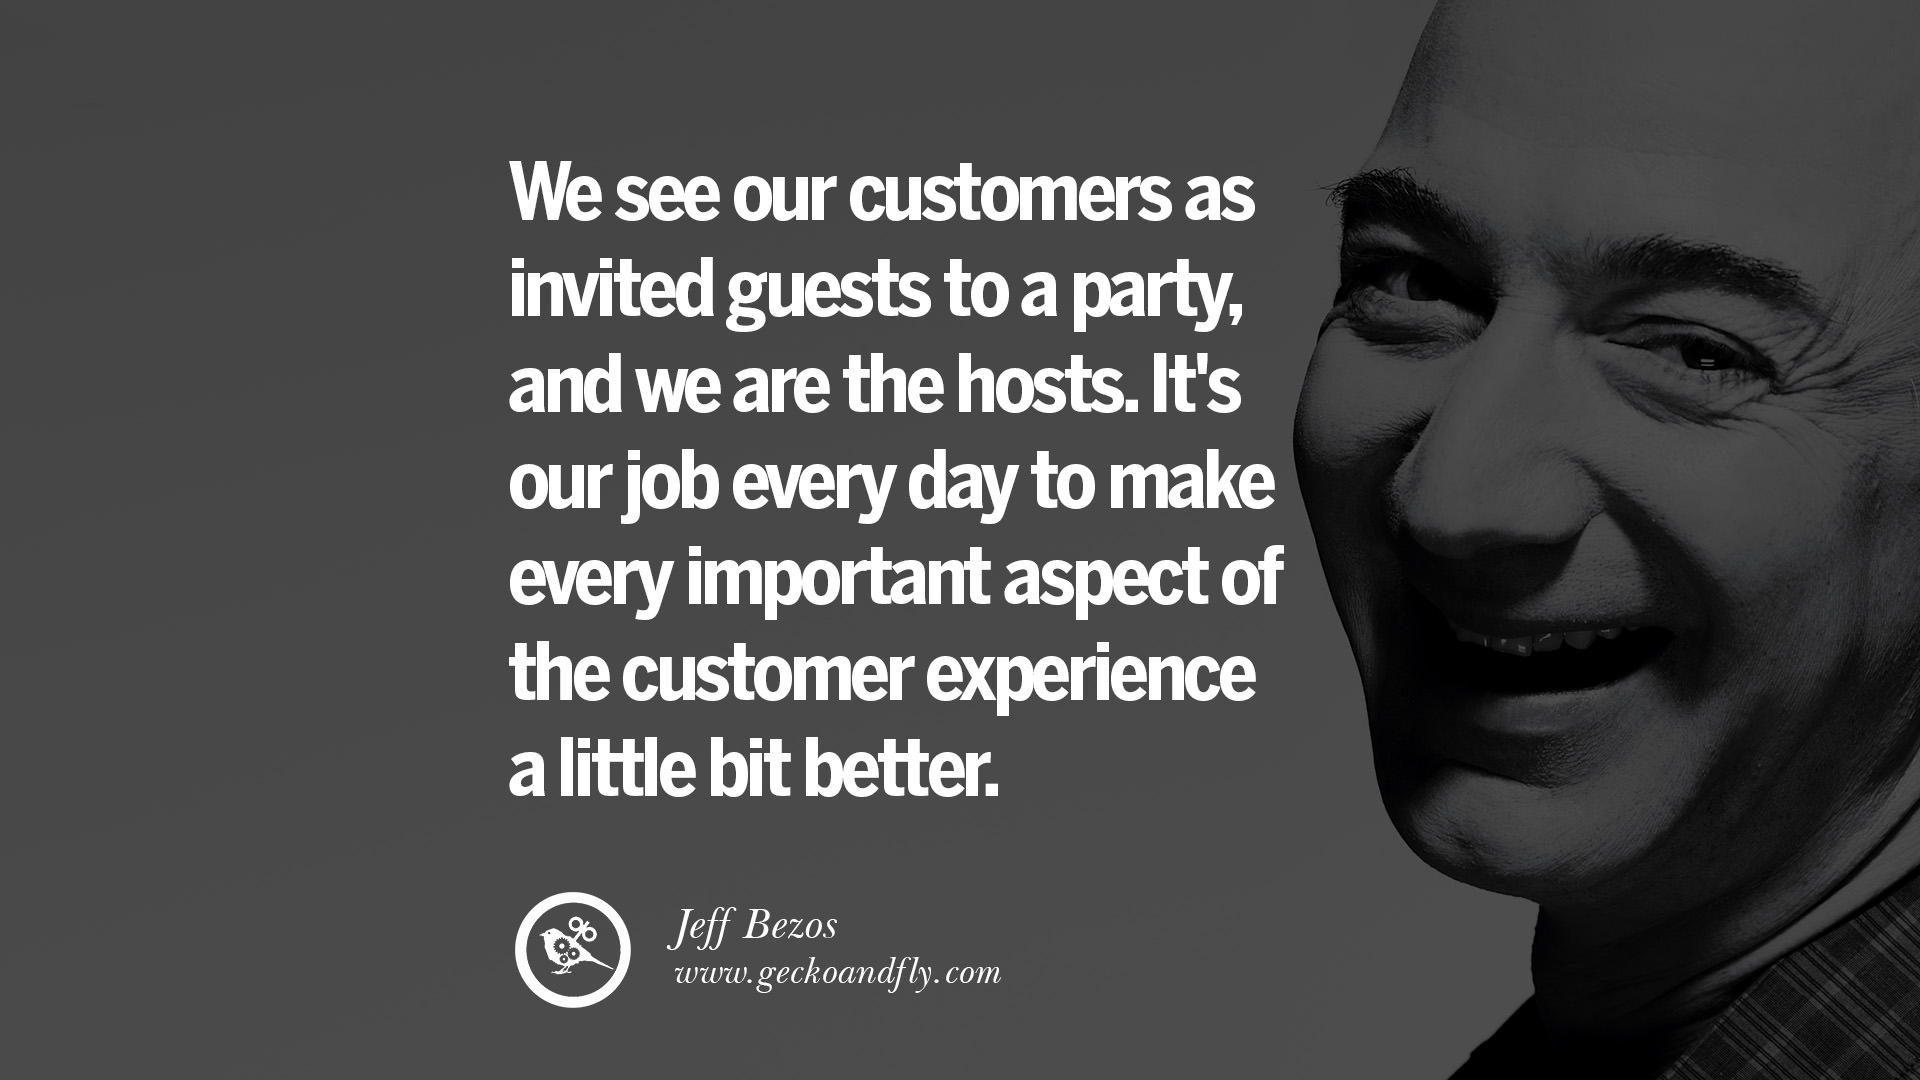 Customer Experience Quotes Magnificent 20 Famous Jeff Bezos Quotes On Innovation Business Commerce And